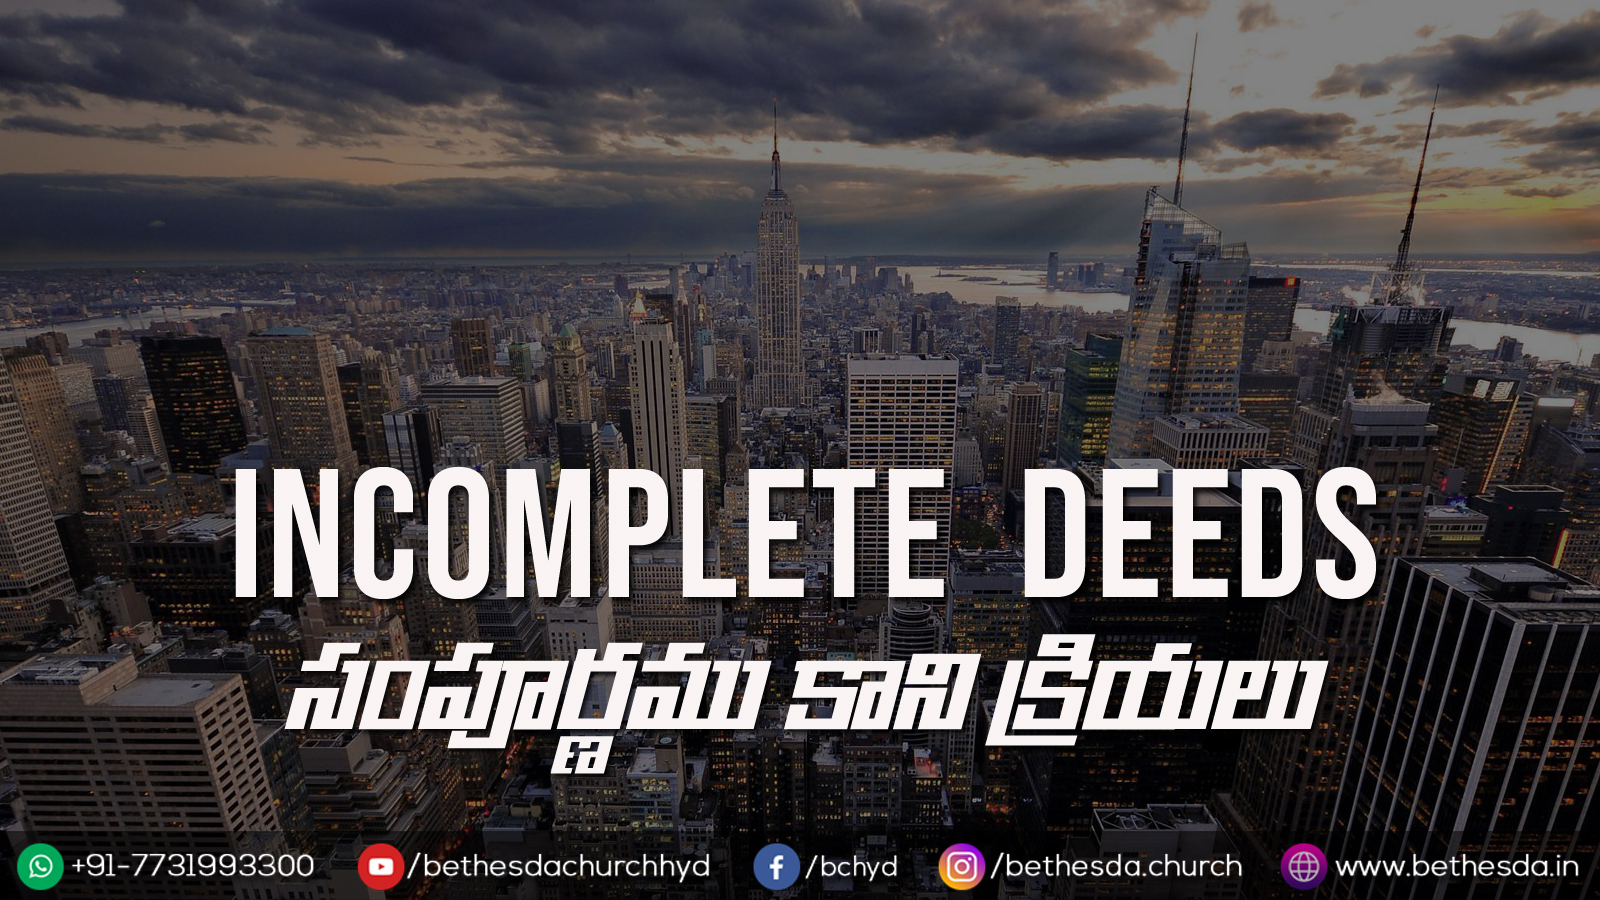 Incomplete Deeds (A349)